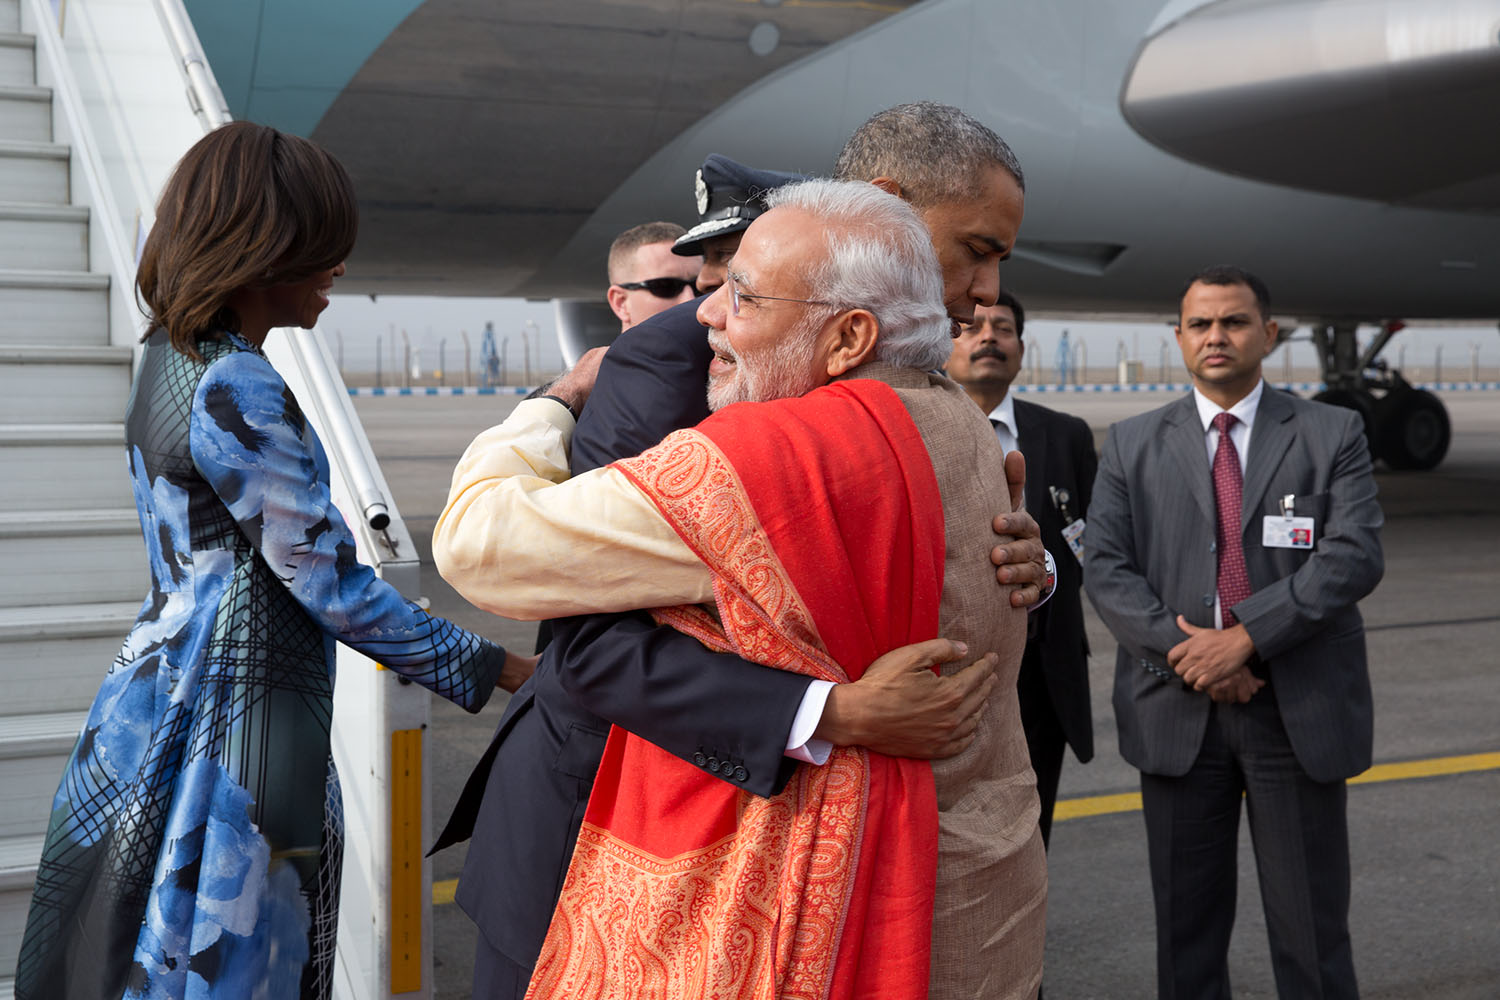 The Peace We Seek President Obama Speaks To The People Of India